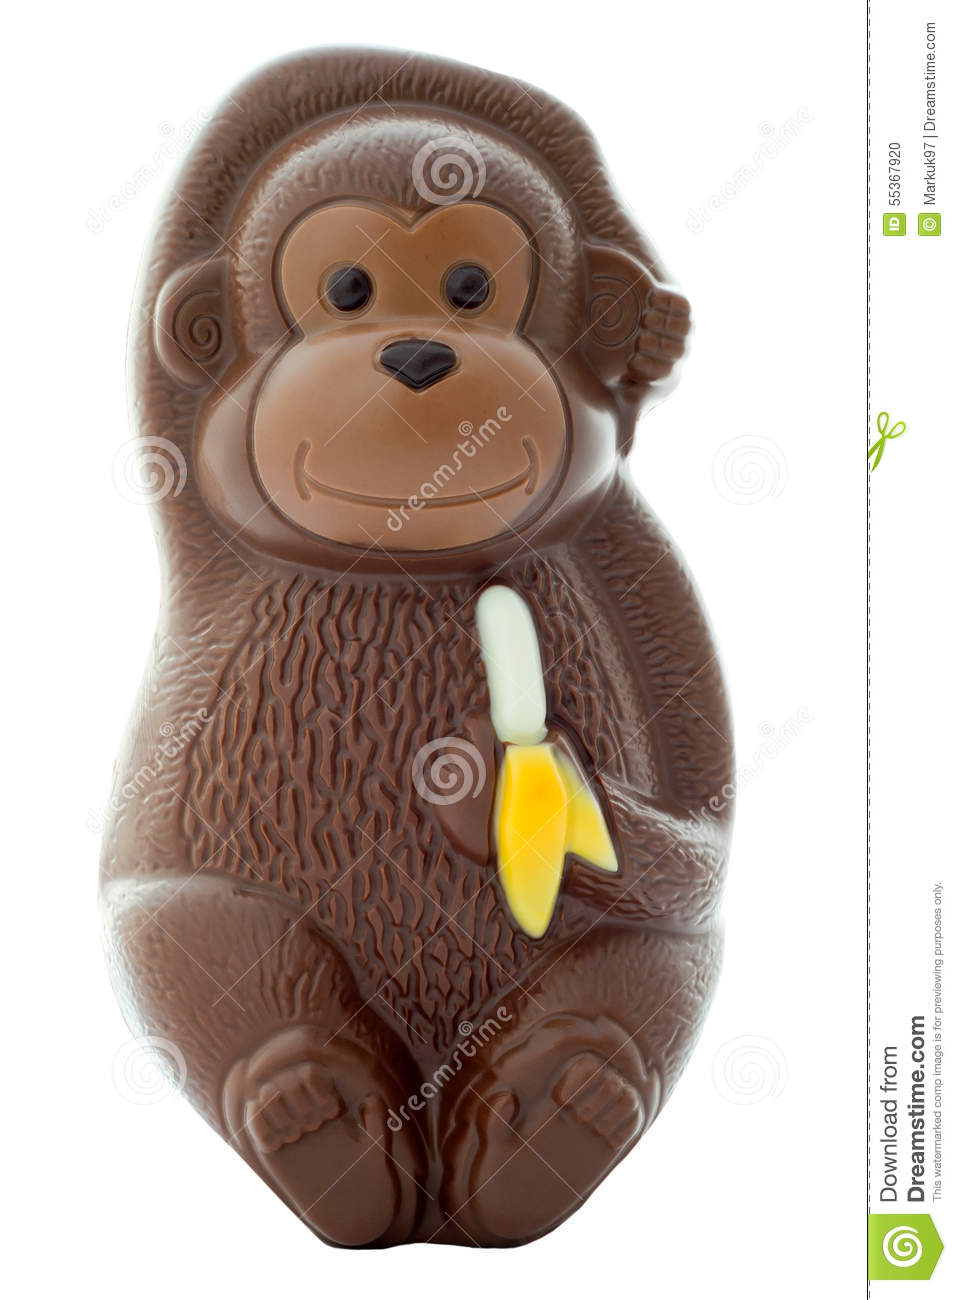 Chocolate Monkey Stock Photo Image Of Cute Candy Brown